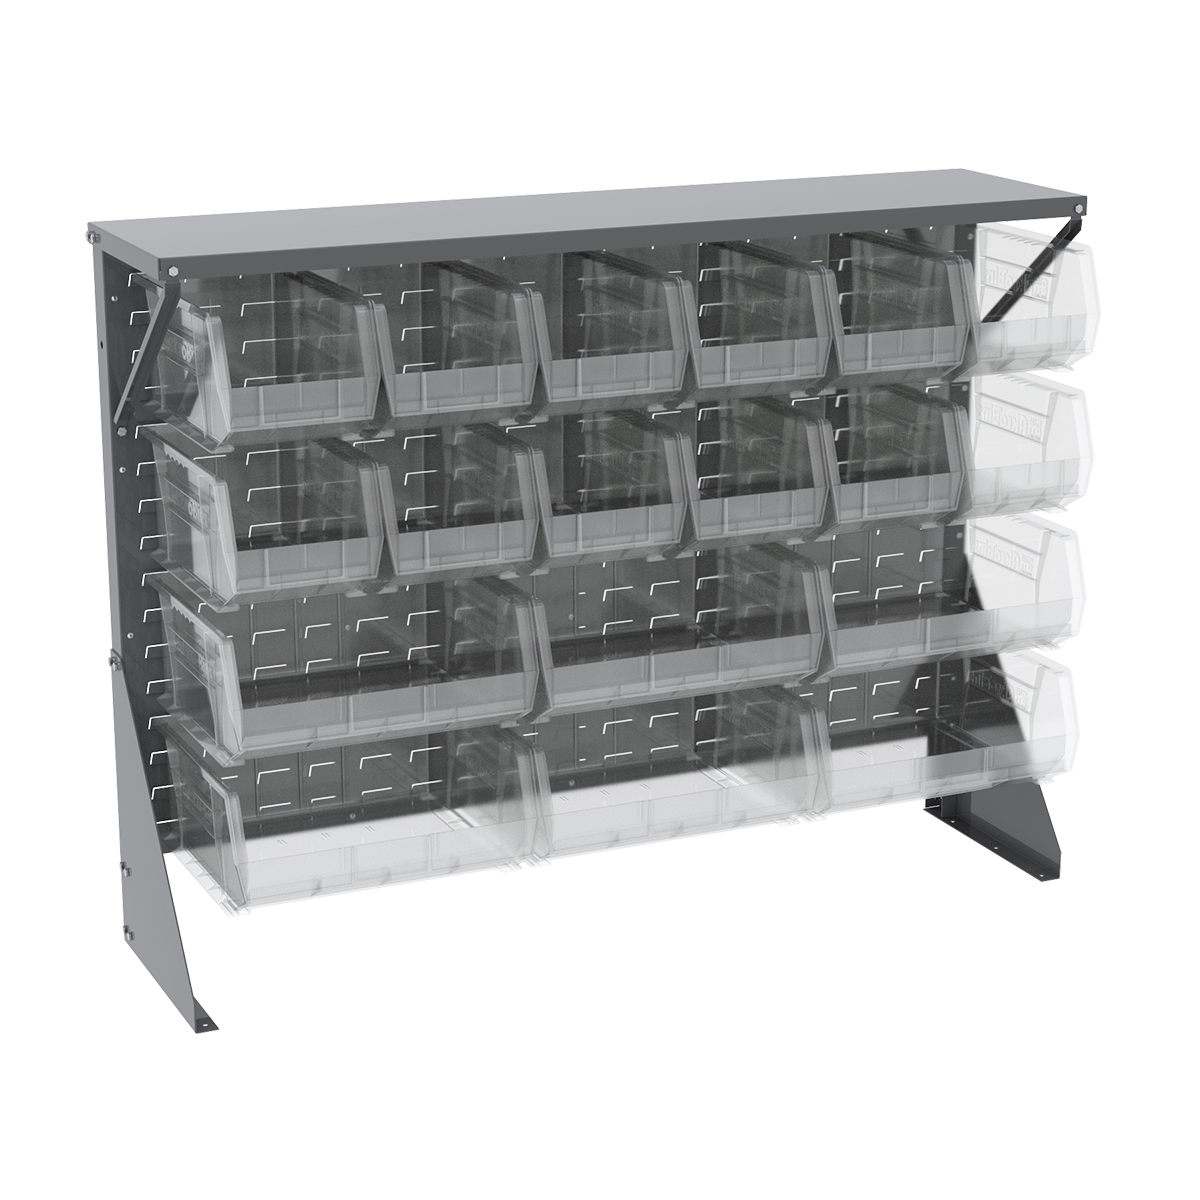 Item DISCONTINUED by Manufacturer.  Low Profile Floor Rack, 1-Sided, Shelf w/ 18 AkroBins, Gray/Clear (30650GYASSTSC).  This item sold in carton quantities of 1.